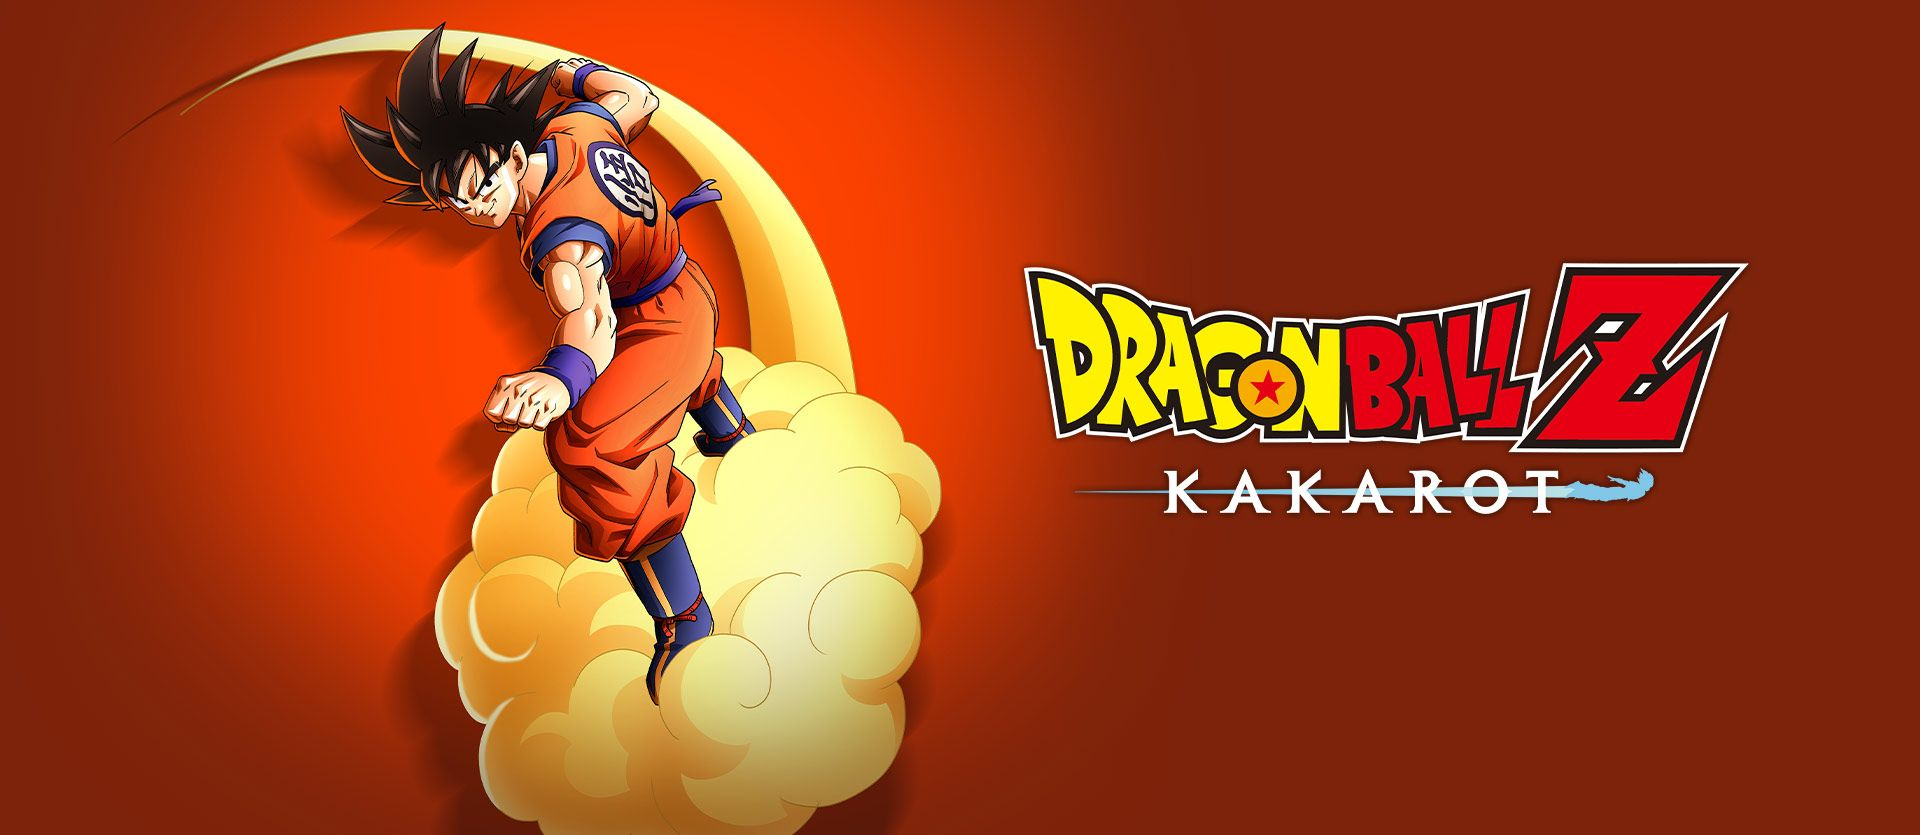 Dragon Ball Z Kakarot Wallpapers - Top Free Dragon Ball Z ...